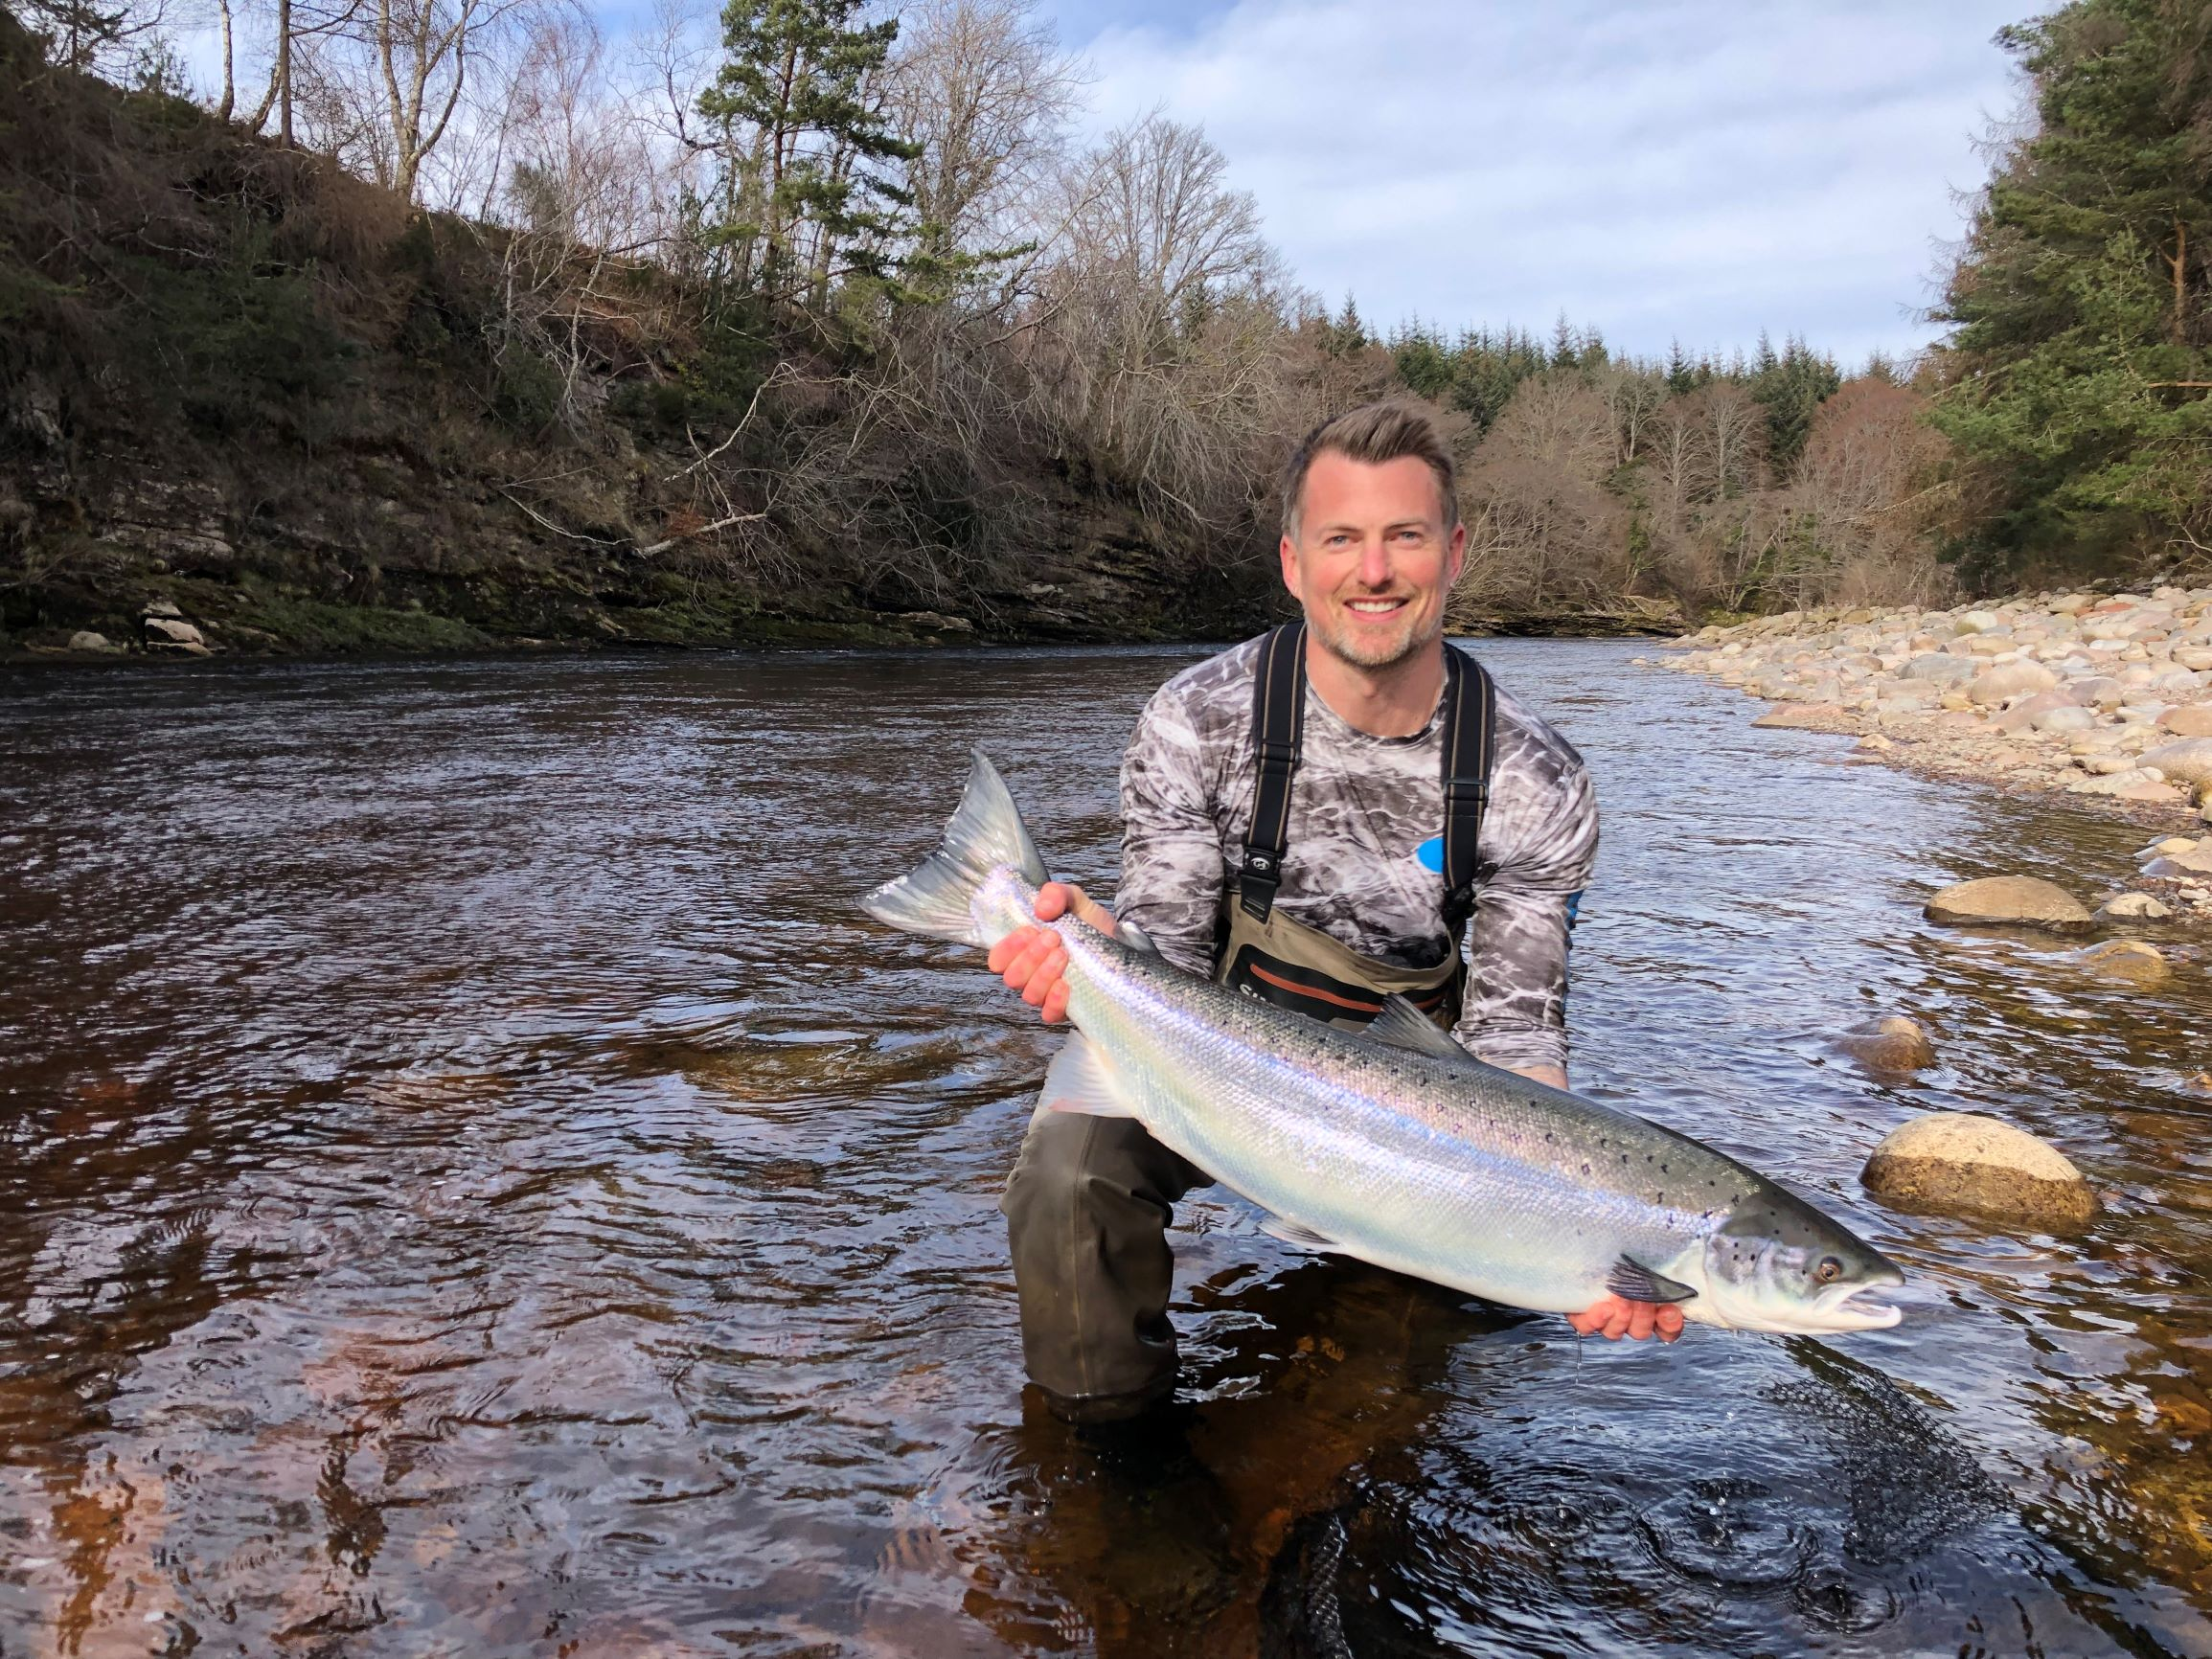 James Stokoe lifts up his first ever Scottish salmon of around 18 lbs. from Palamore Pool, Altyre Estate, River Findhorn.